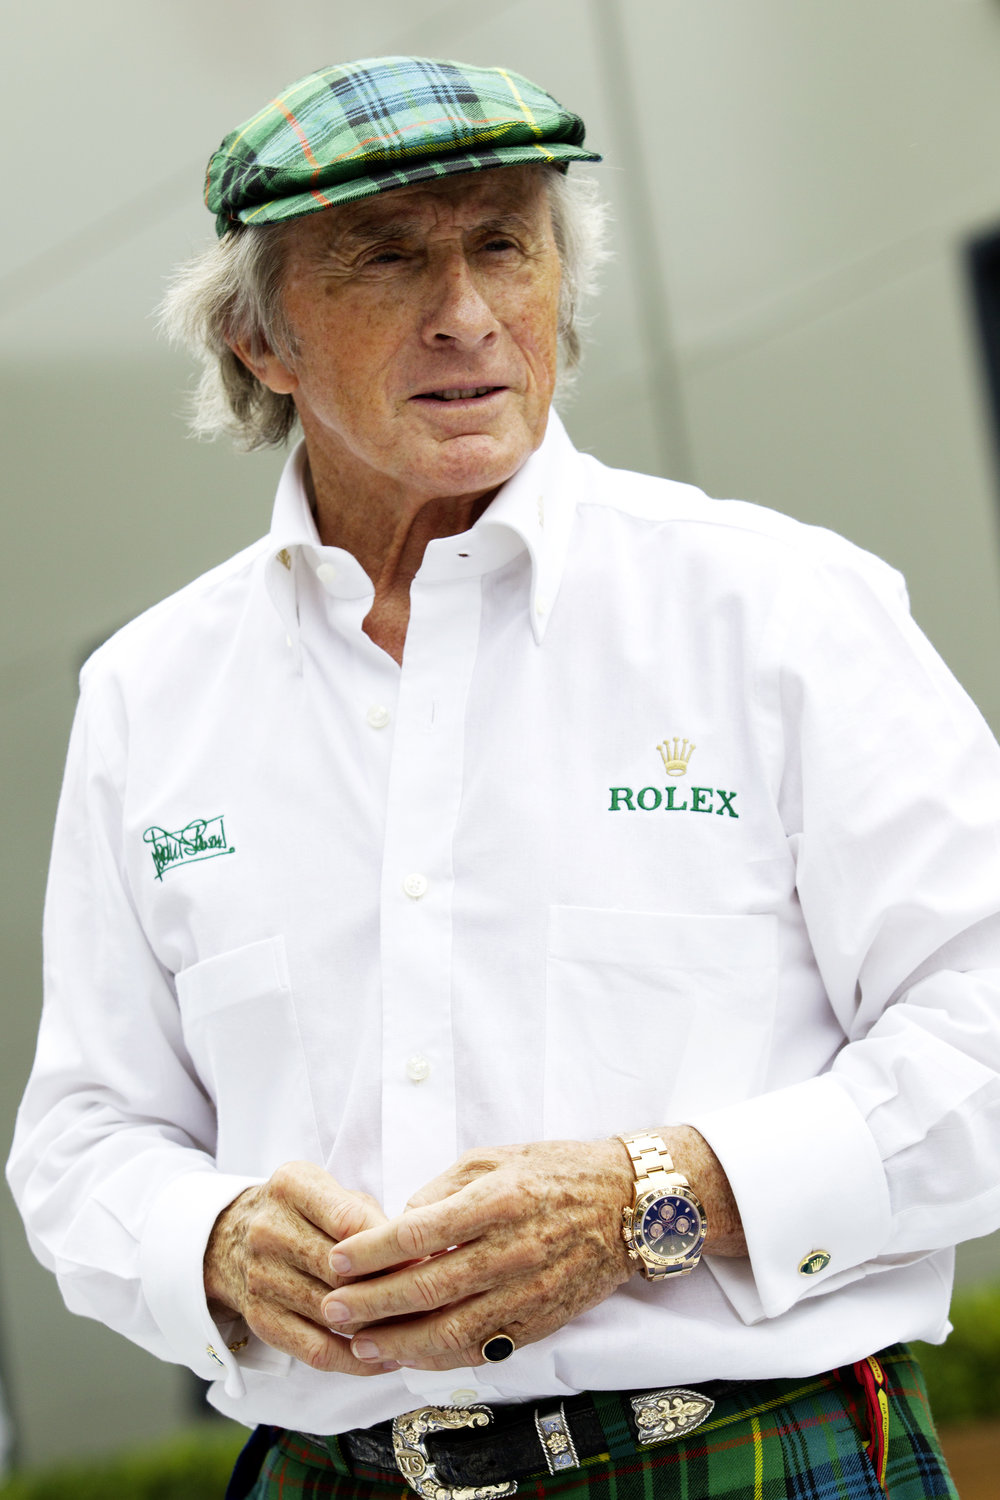 ©Rolex/James Moy ROLEX TESTIMONEE, SIR JACKIE STEWART AT THE 2014 FORMULA 1 ROLEX AUSTRALIAN GRAND PRIX